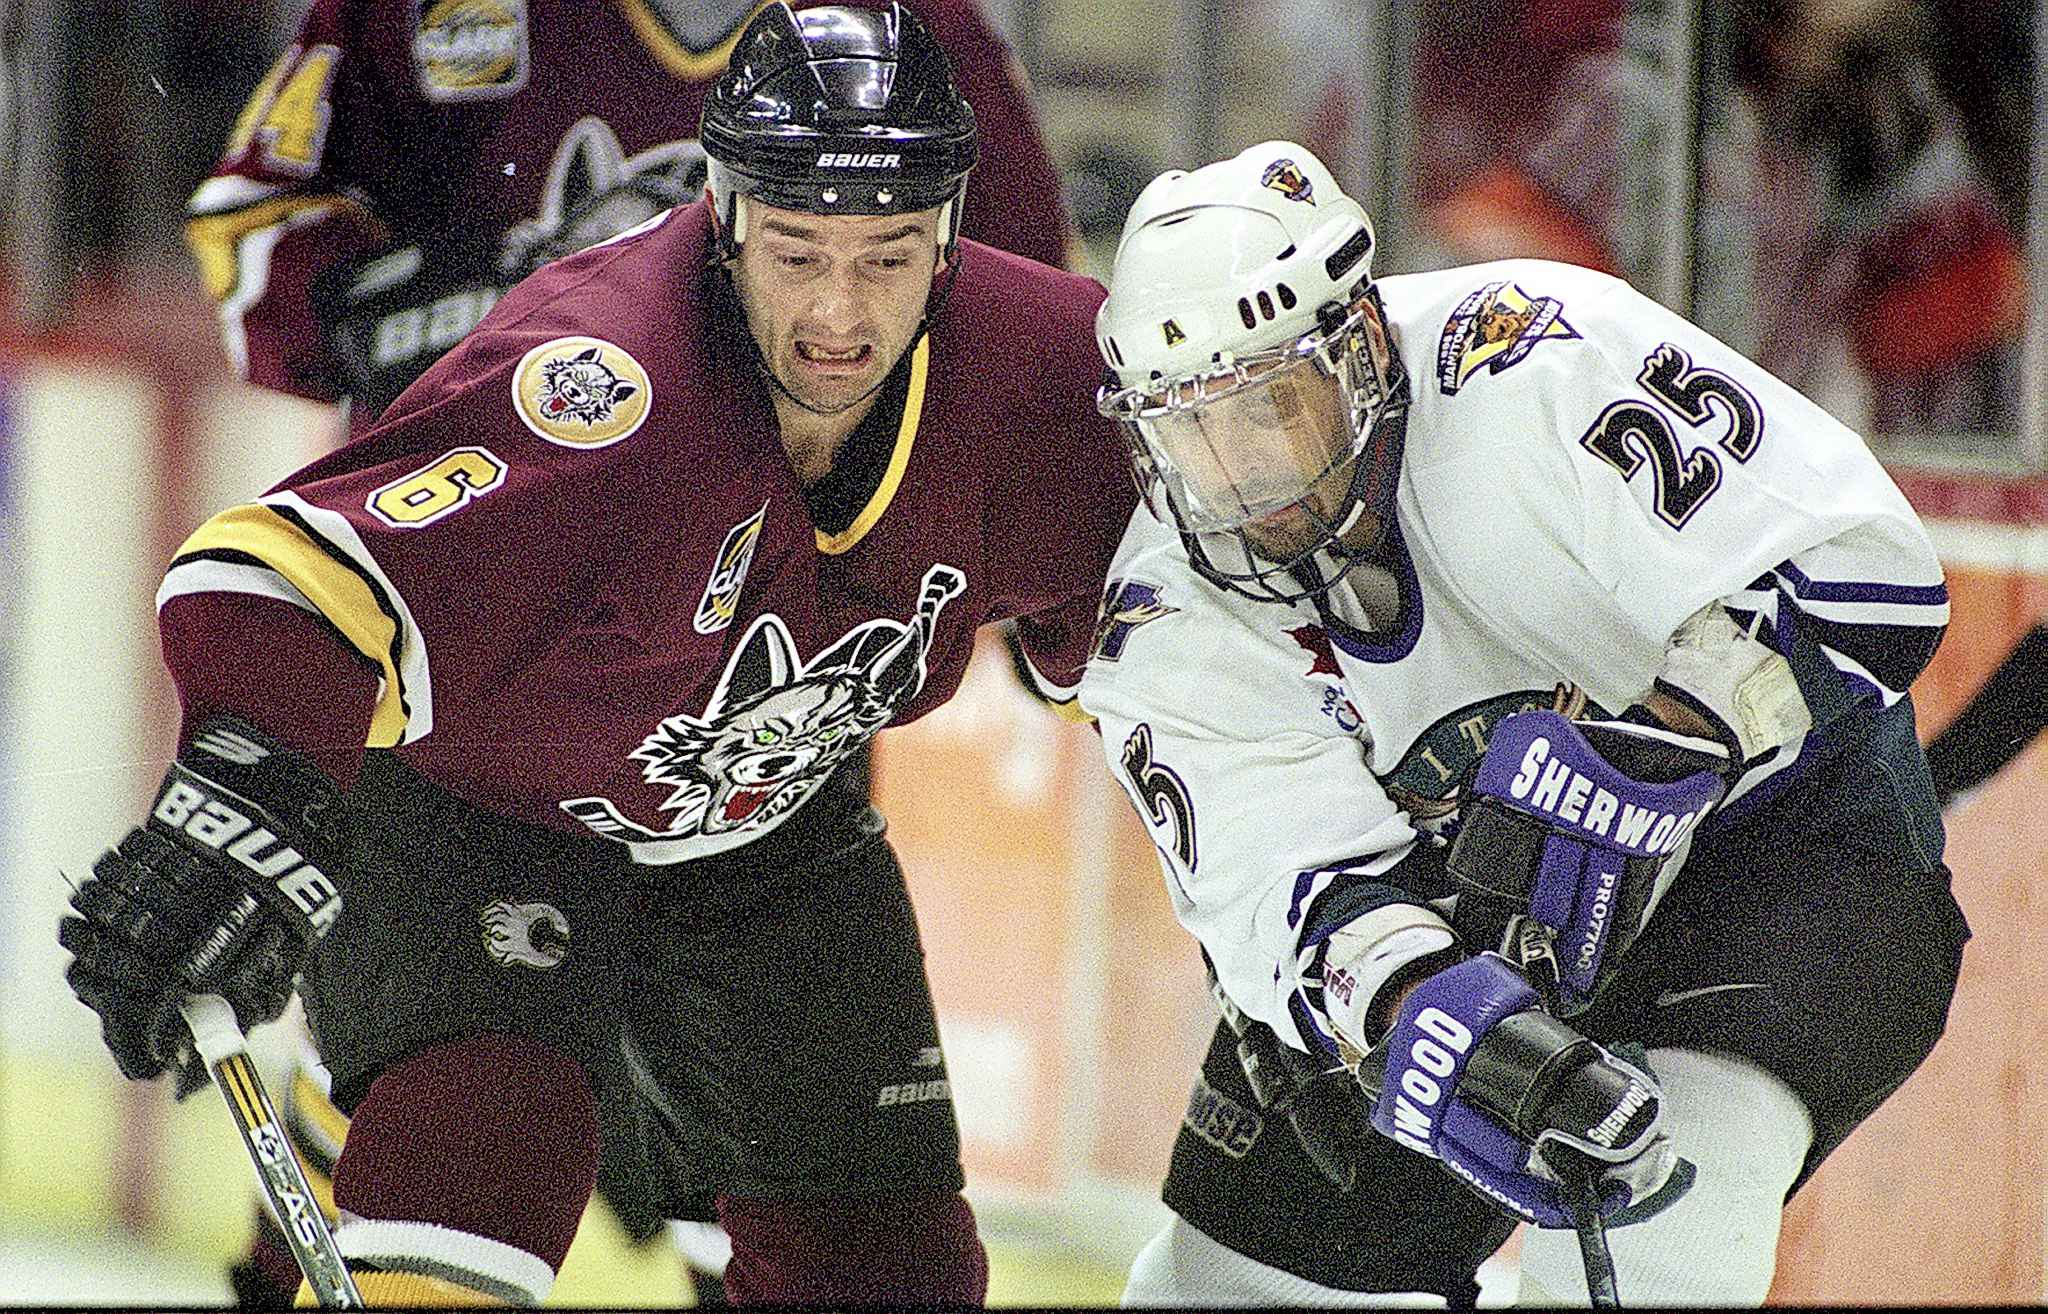 Eakins, left, as a member of the IHL's Chicago Wolves where he won a Turner Cup in 2001 playing for GM Kevin Cheveldayoff.